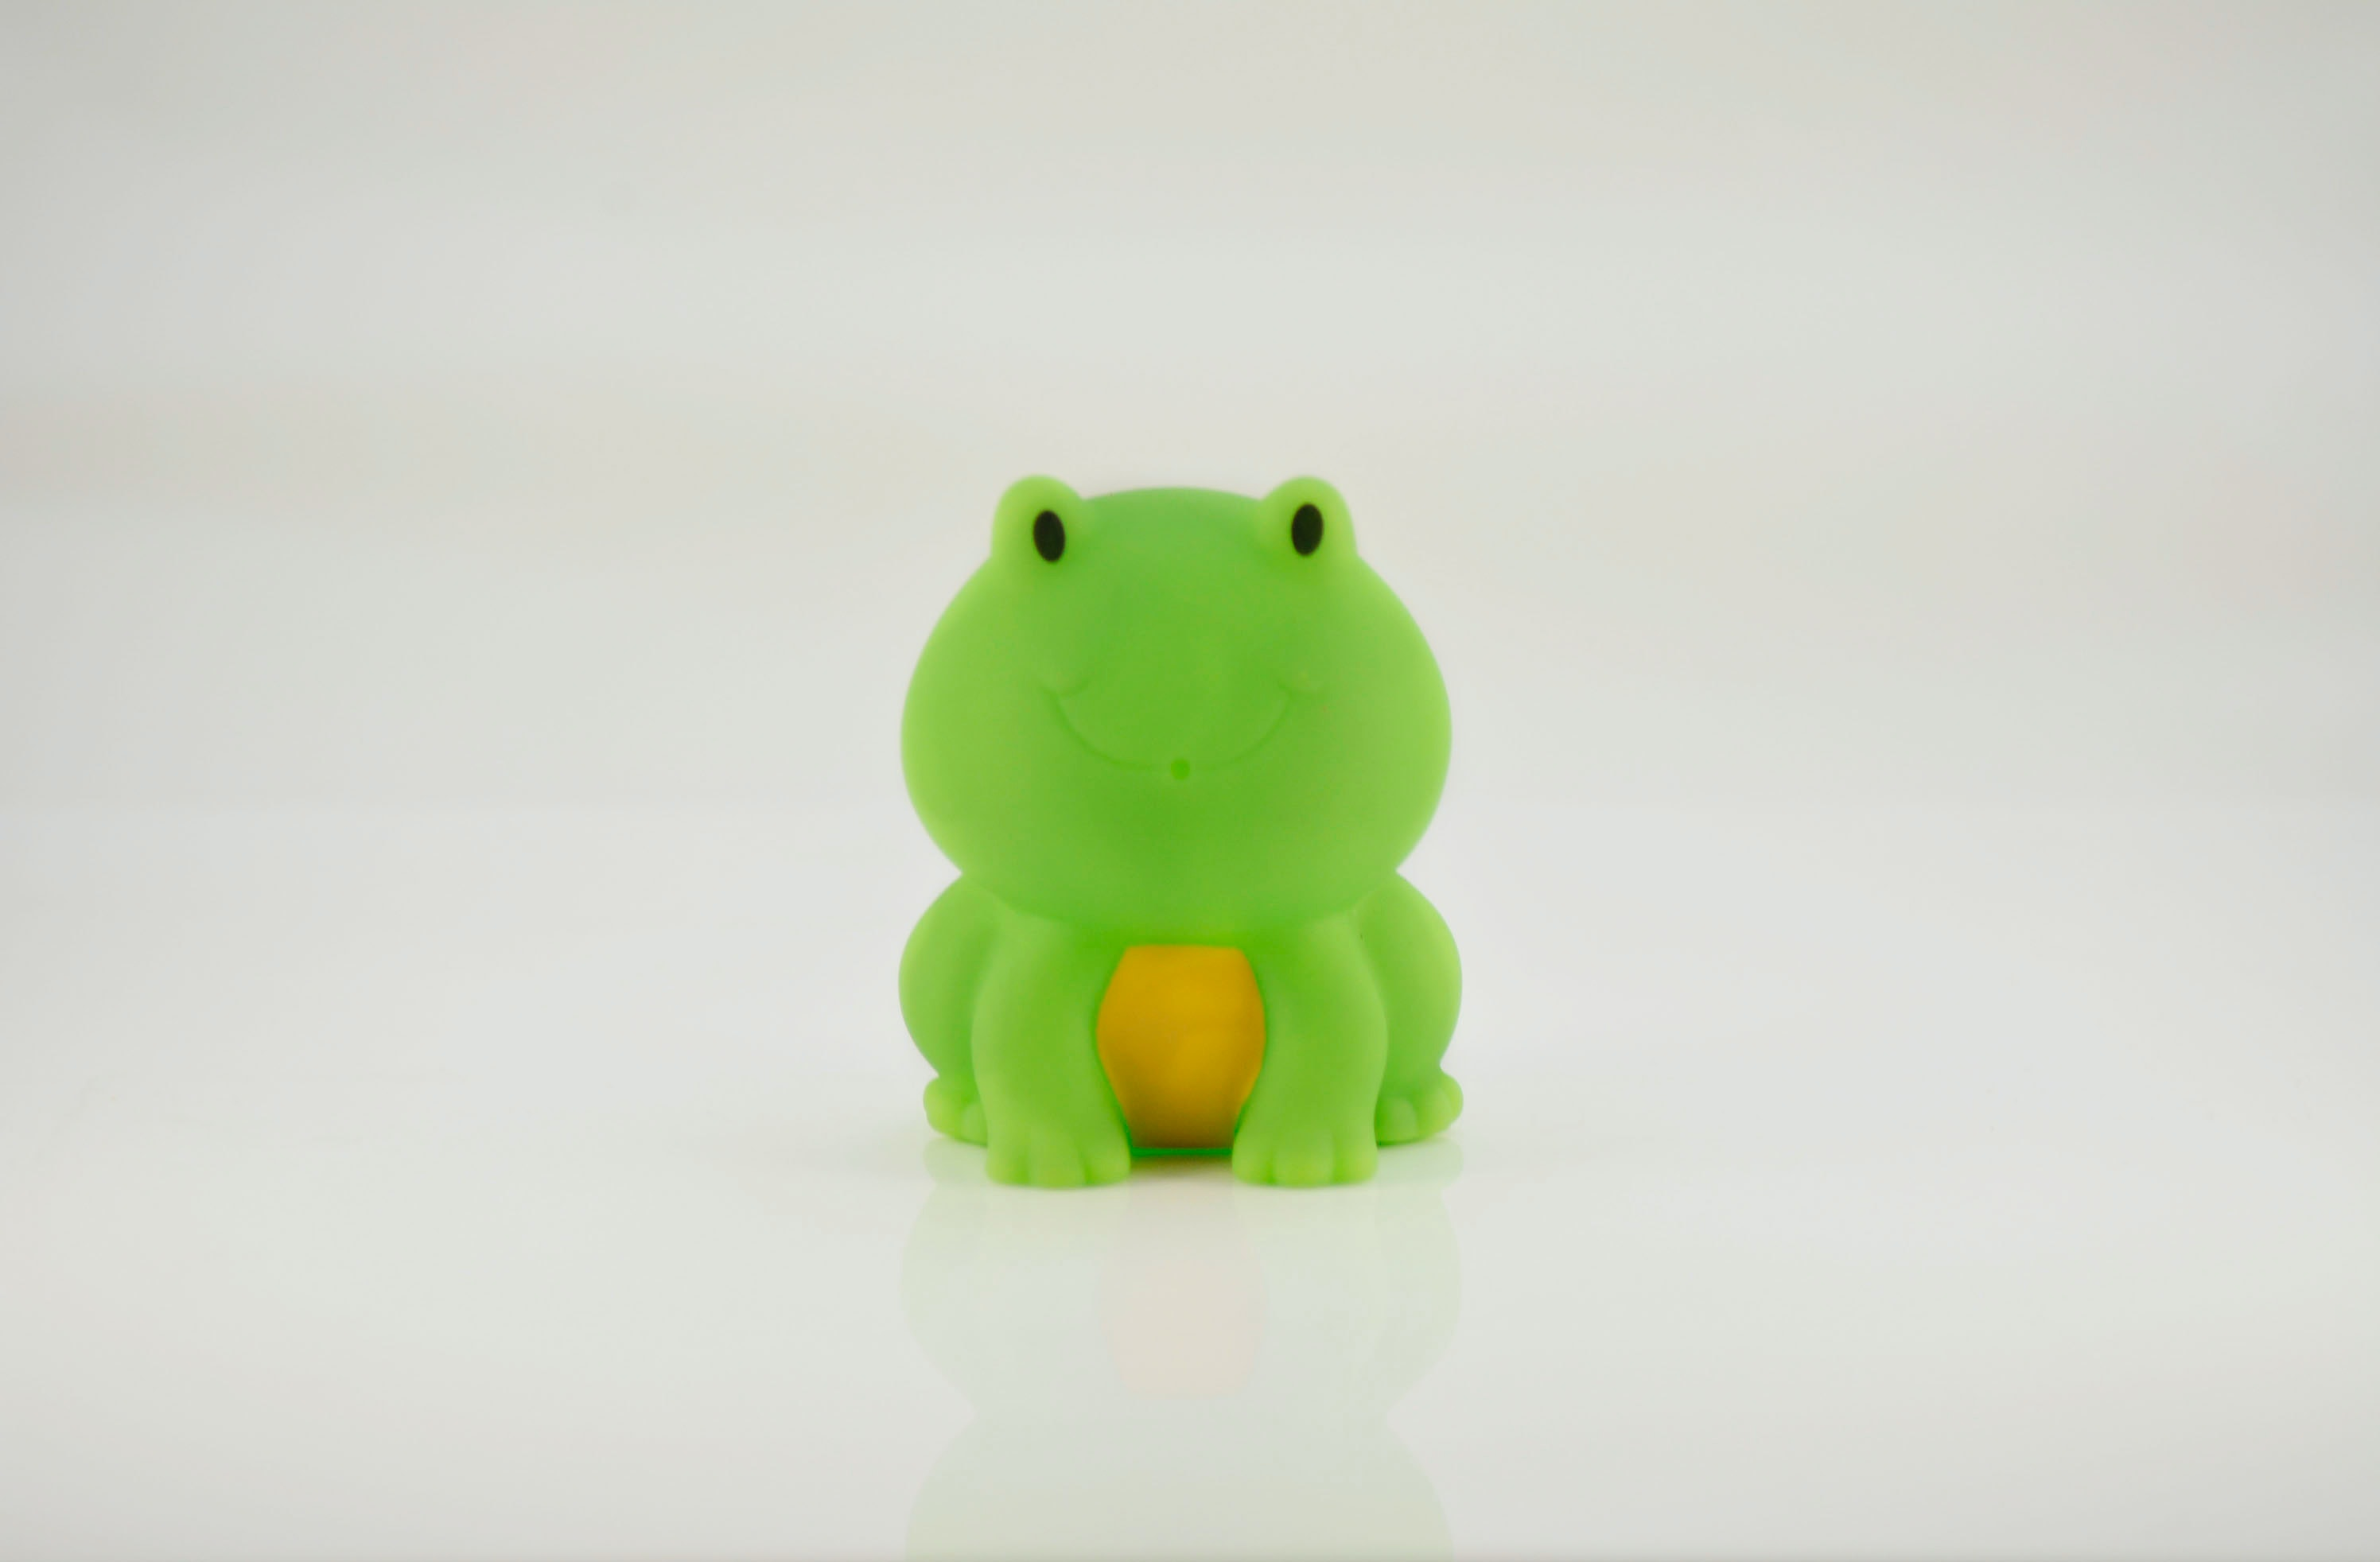 Free stock photo of bath toy, frog, frog toy